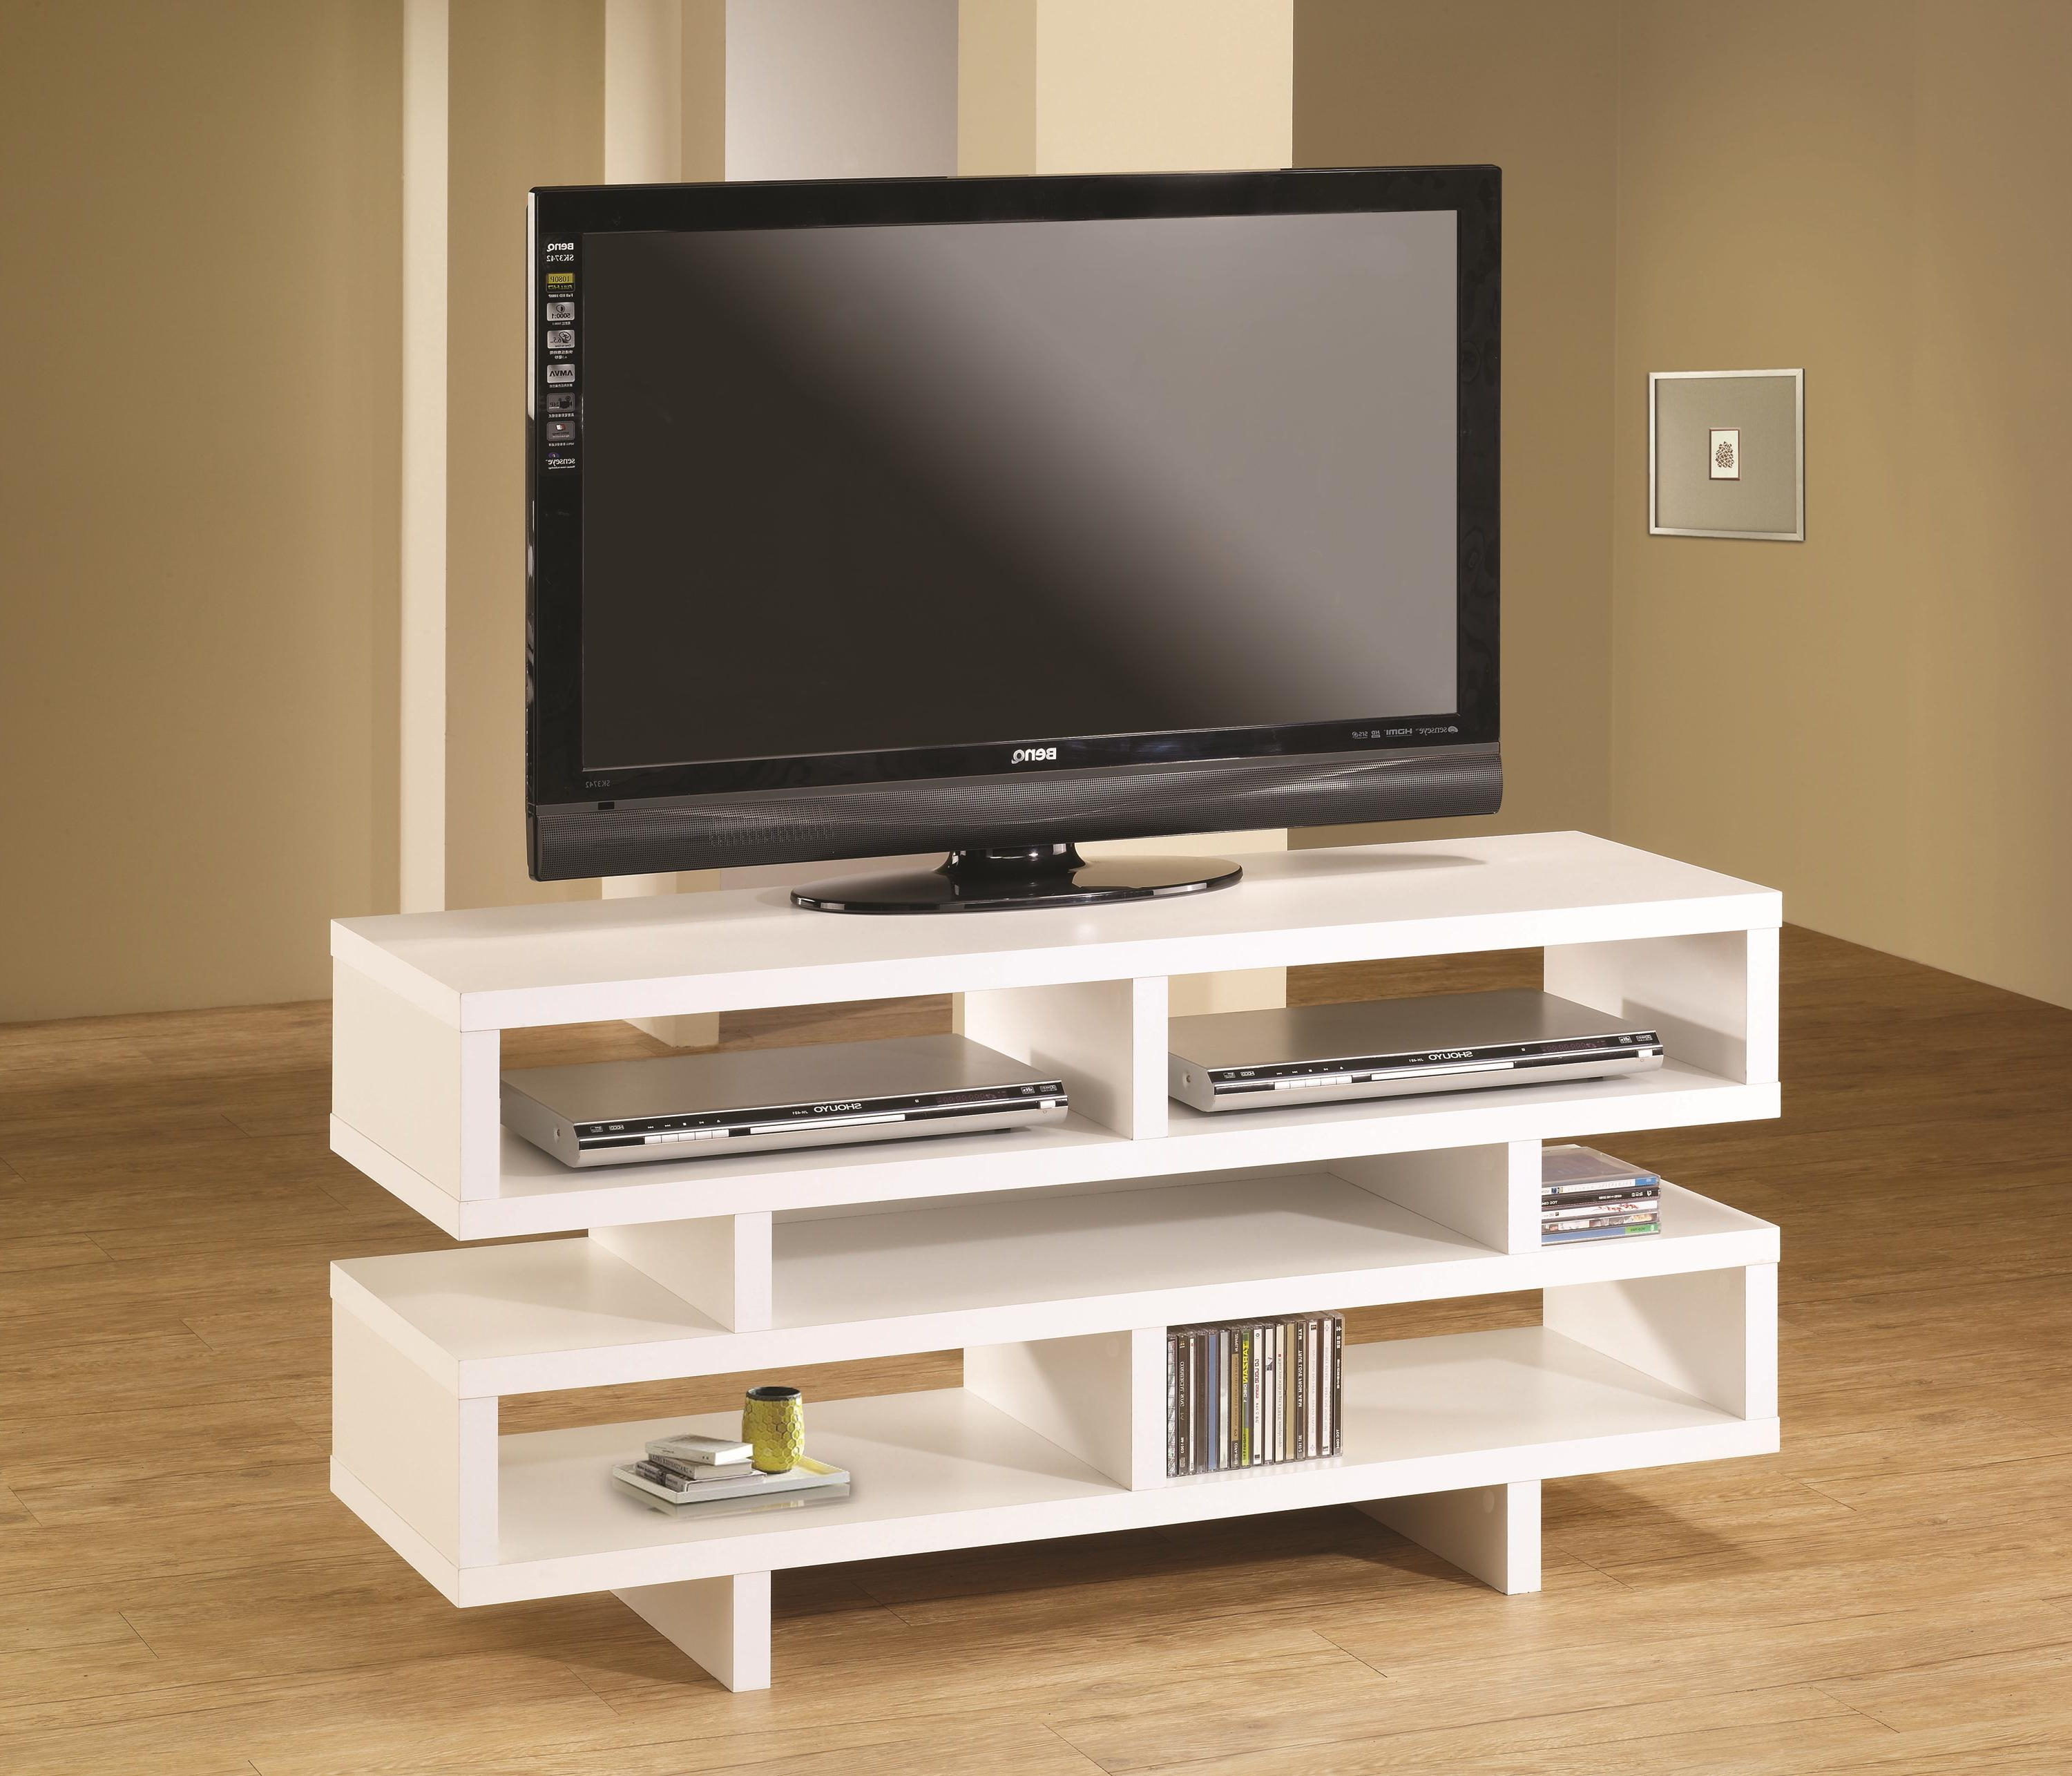 Contemporary Tv Stands Intended For Newest Tv Stands Contemporary Tv Console With Open Storage & White Finish Coaster At Value City Furniture (Gallery 7 of 20)